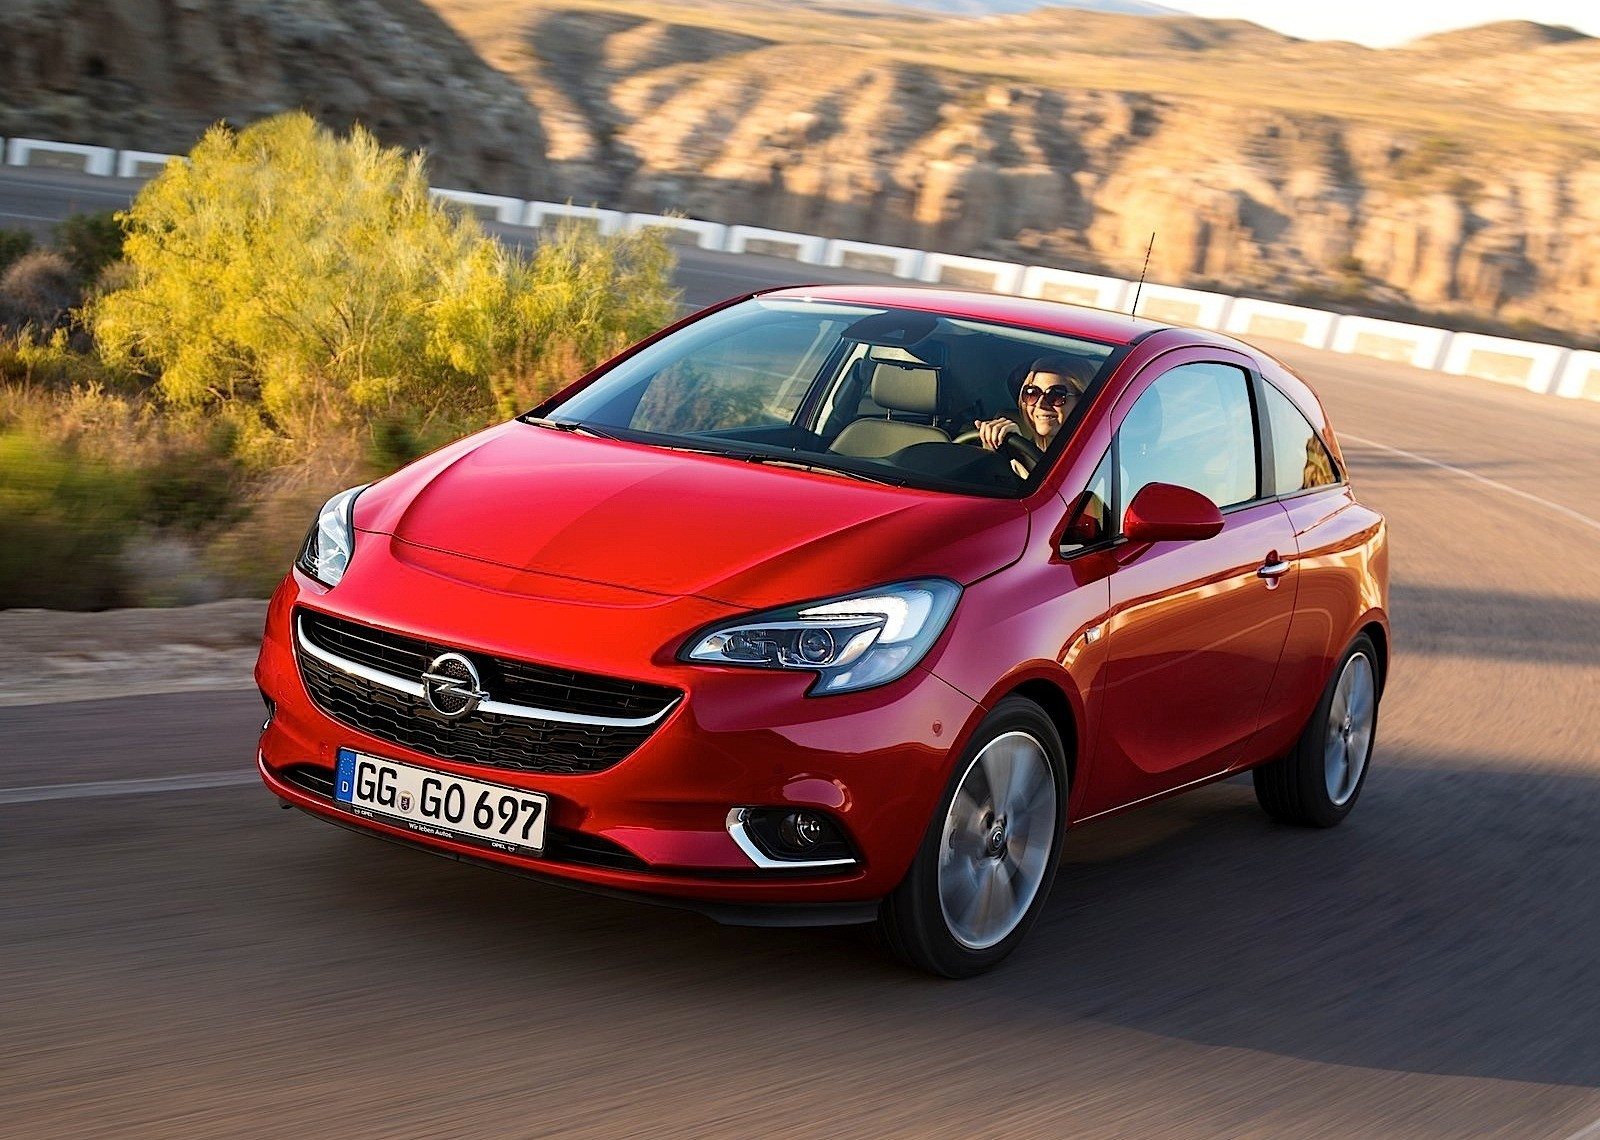 2017 Opel / Vauxhall Corsa UK Review Highlights More Flaws Than Expected - autoevolution